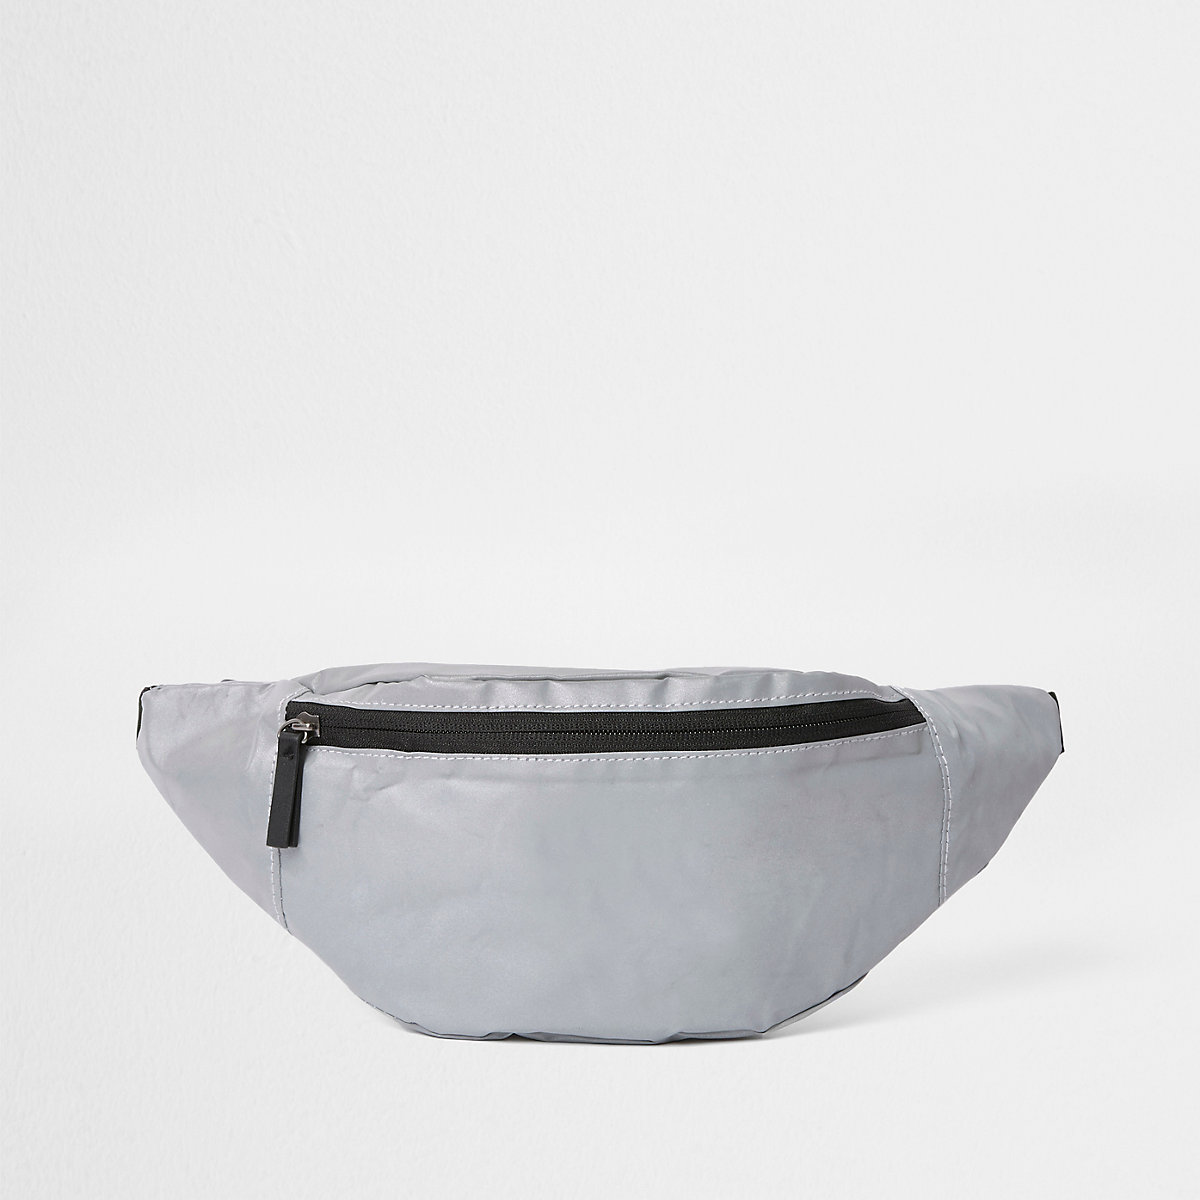 Grey reflective cross body bag